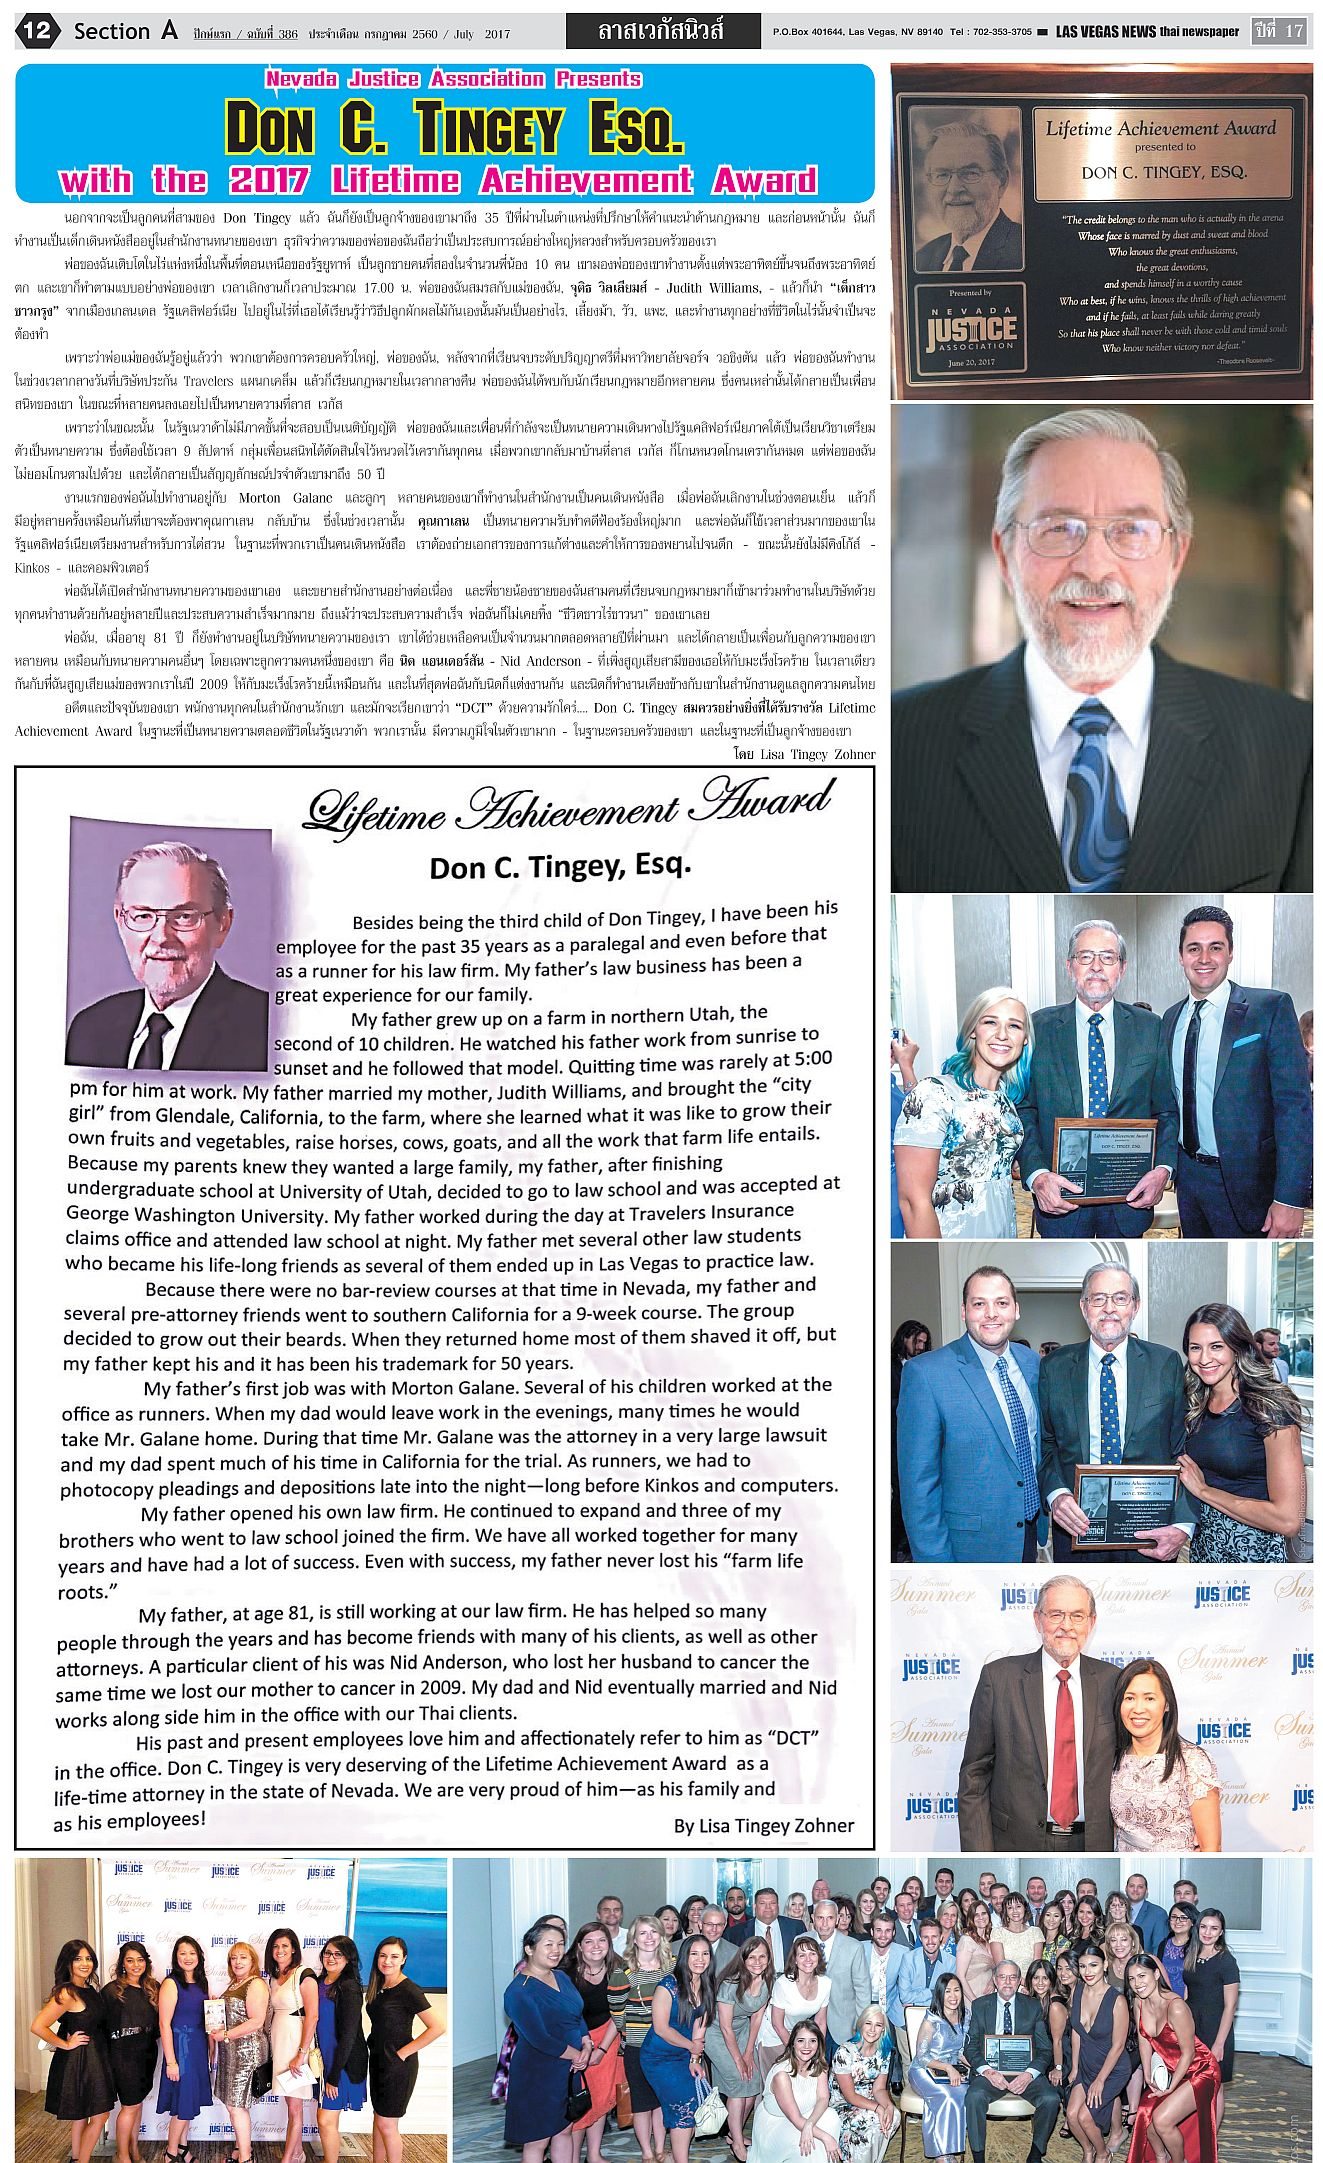 LVN Tribute to Don C. Tingey for receiving the Lifetime Achievement Award from the Nevada Justice Association